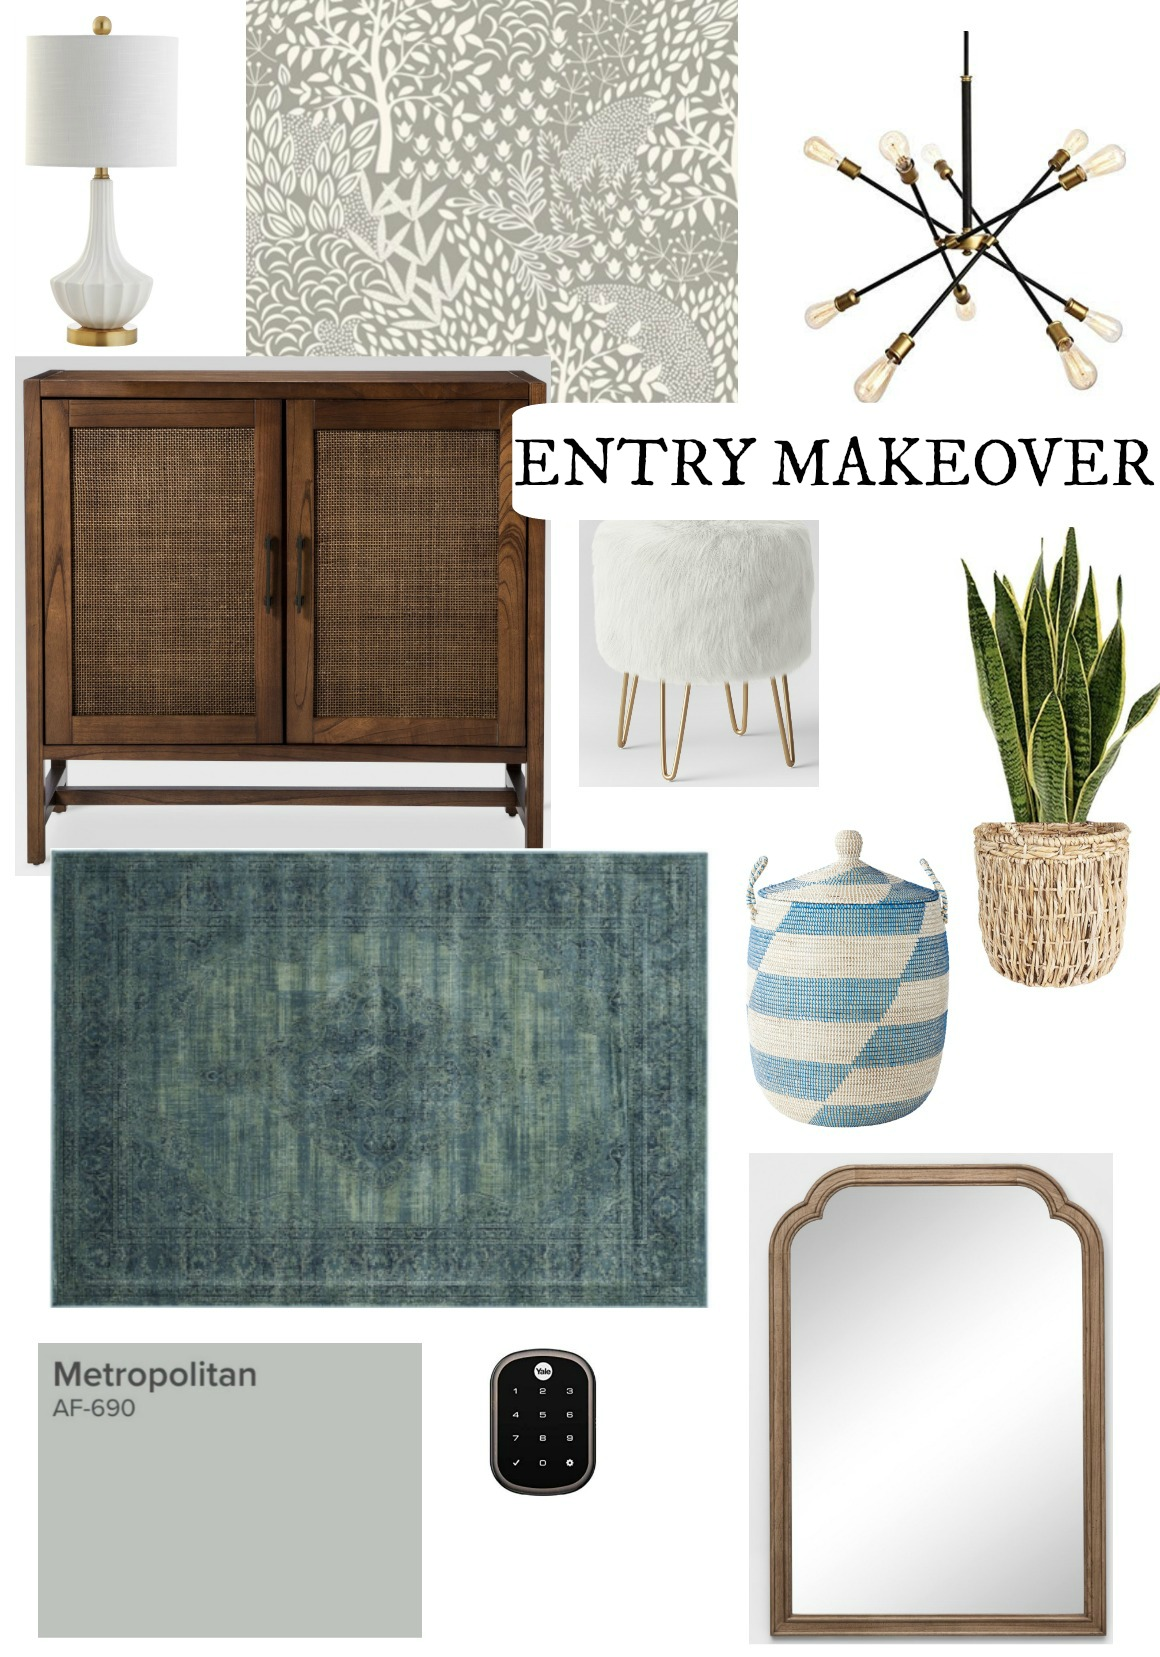 Entry Makeover- Color of the Year